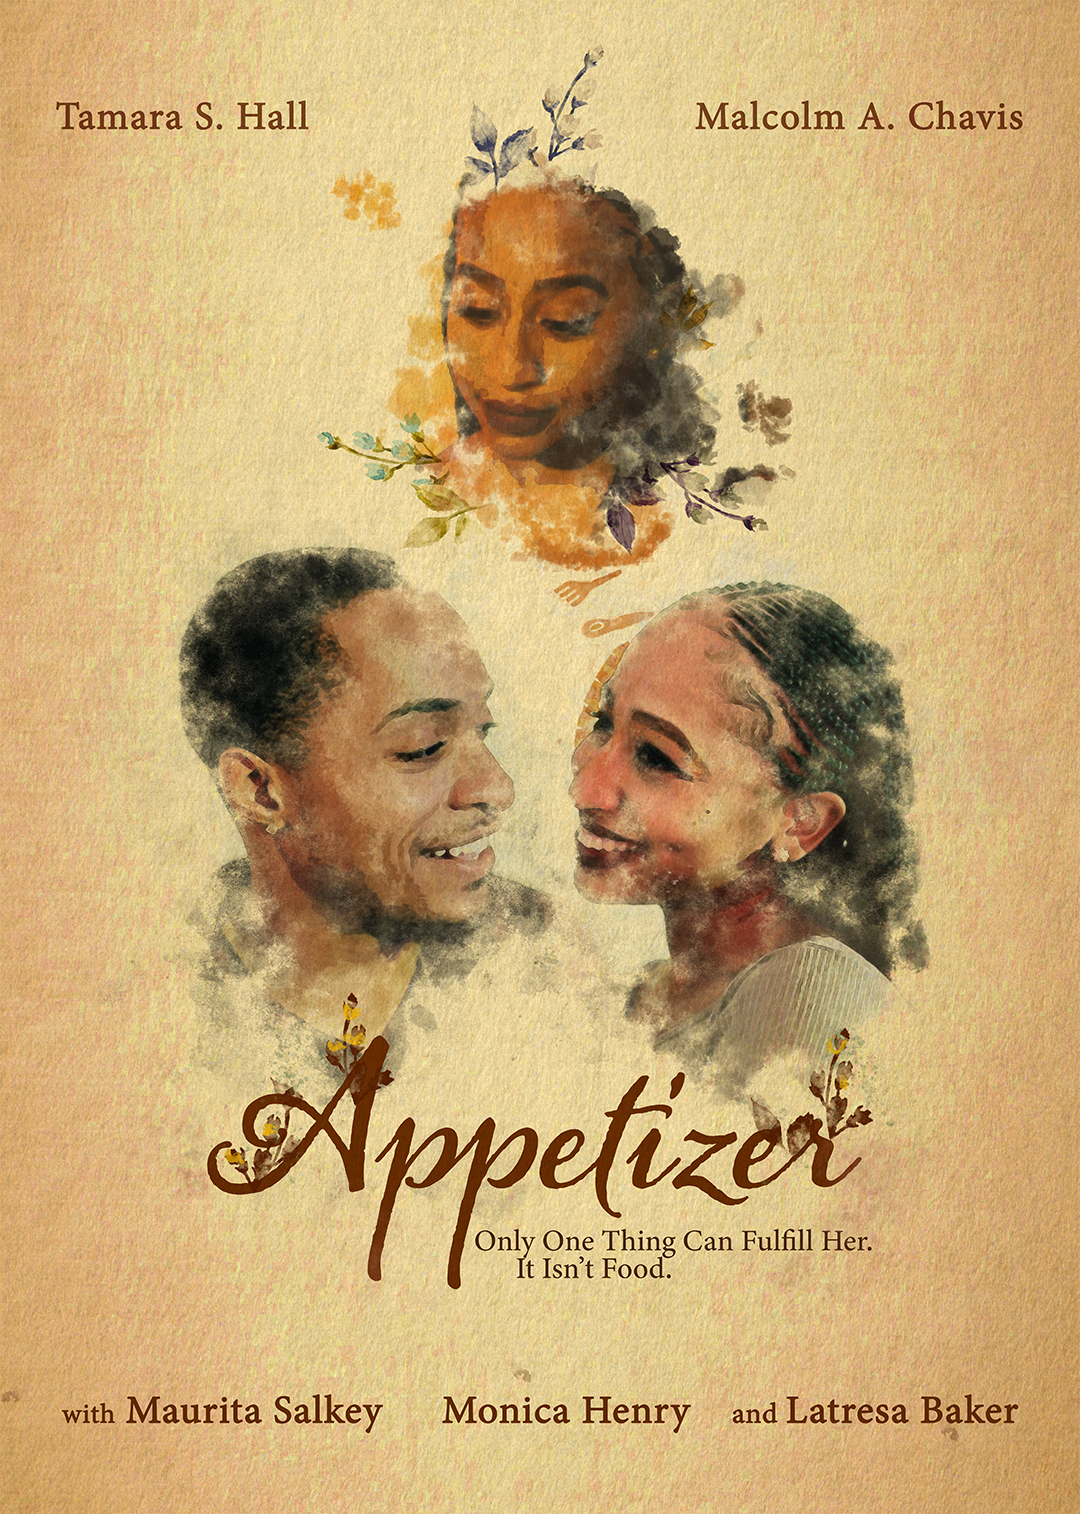 Appetizer Film Poster_No Credits - Resiz